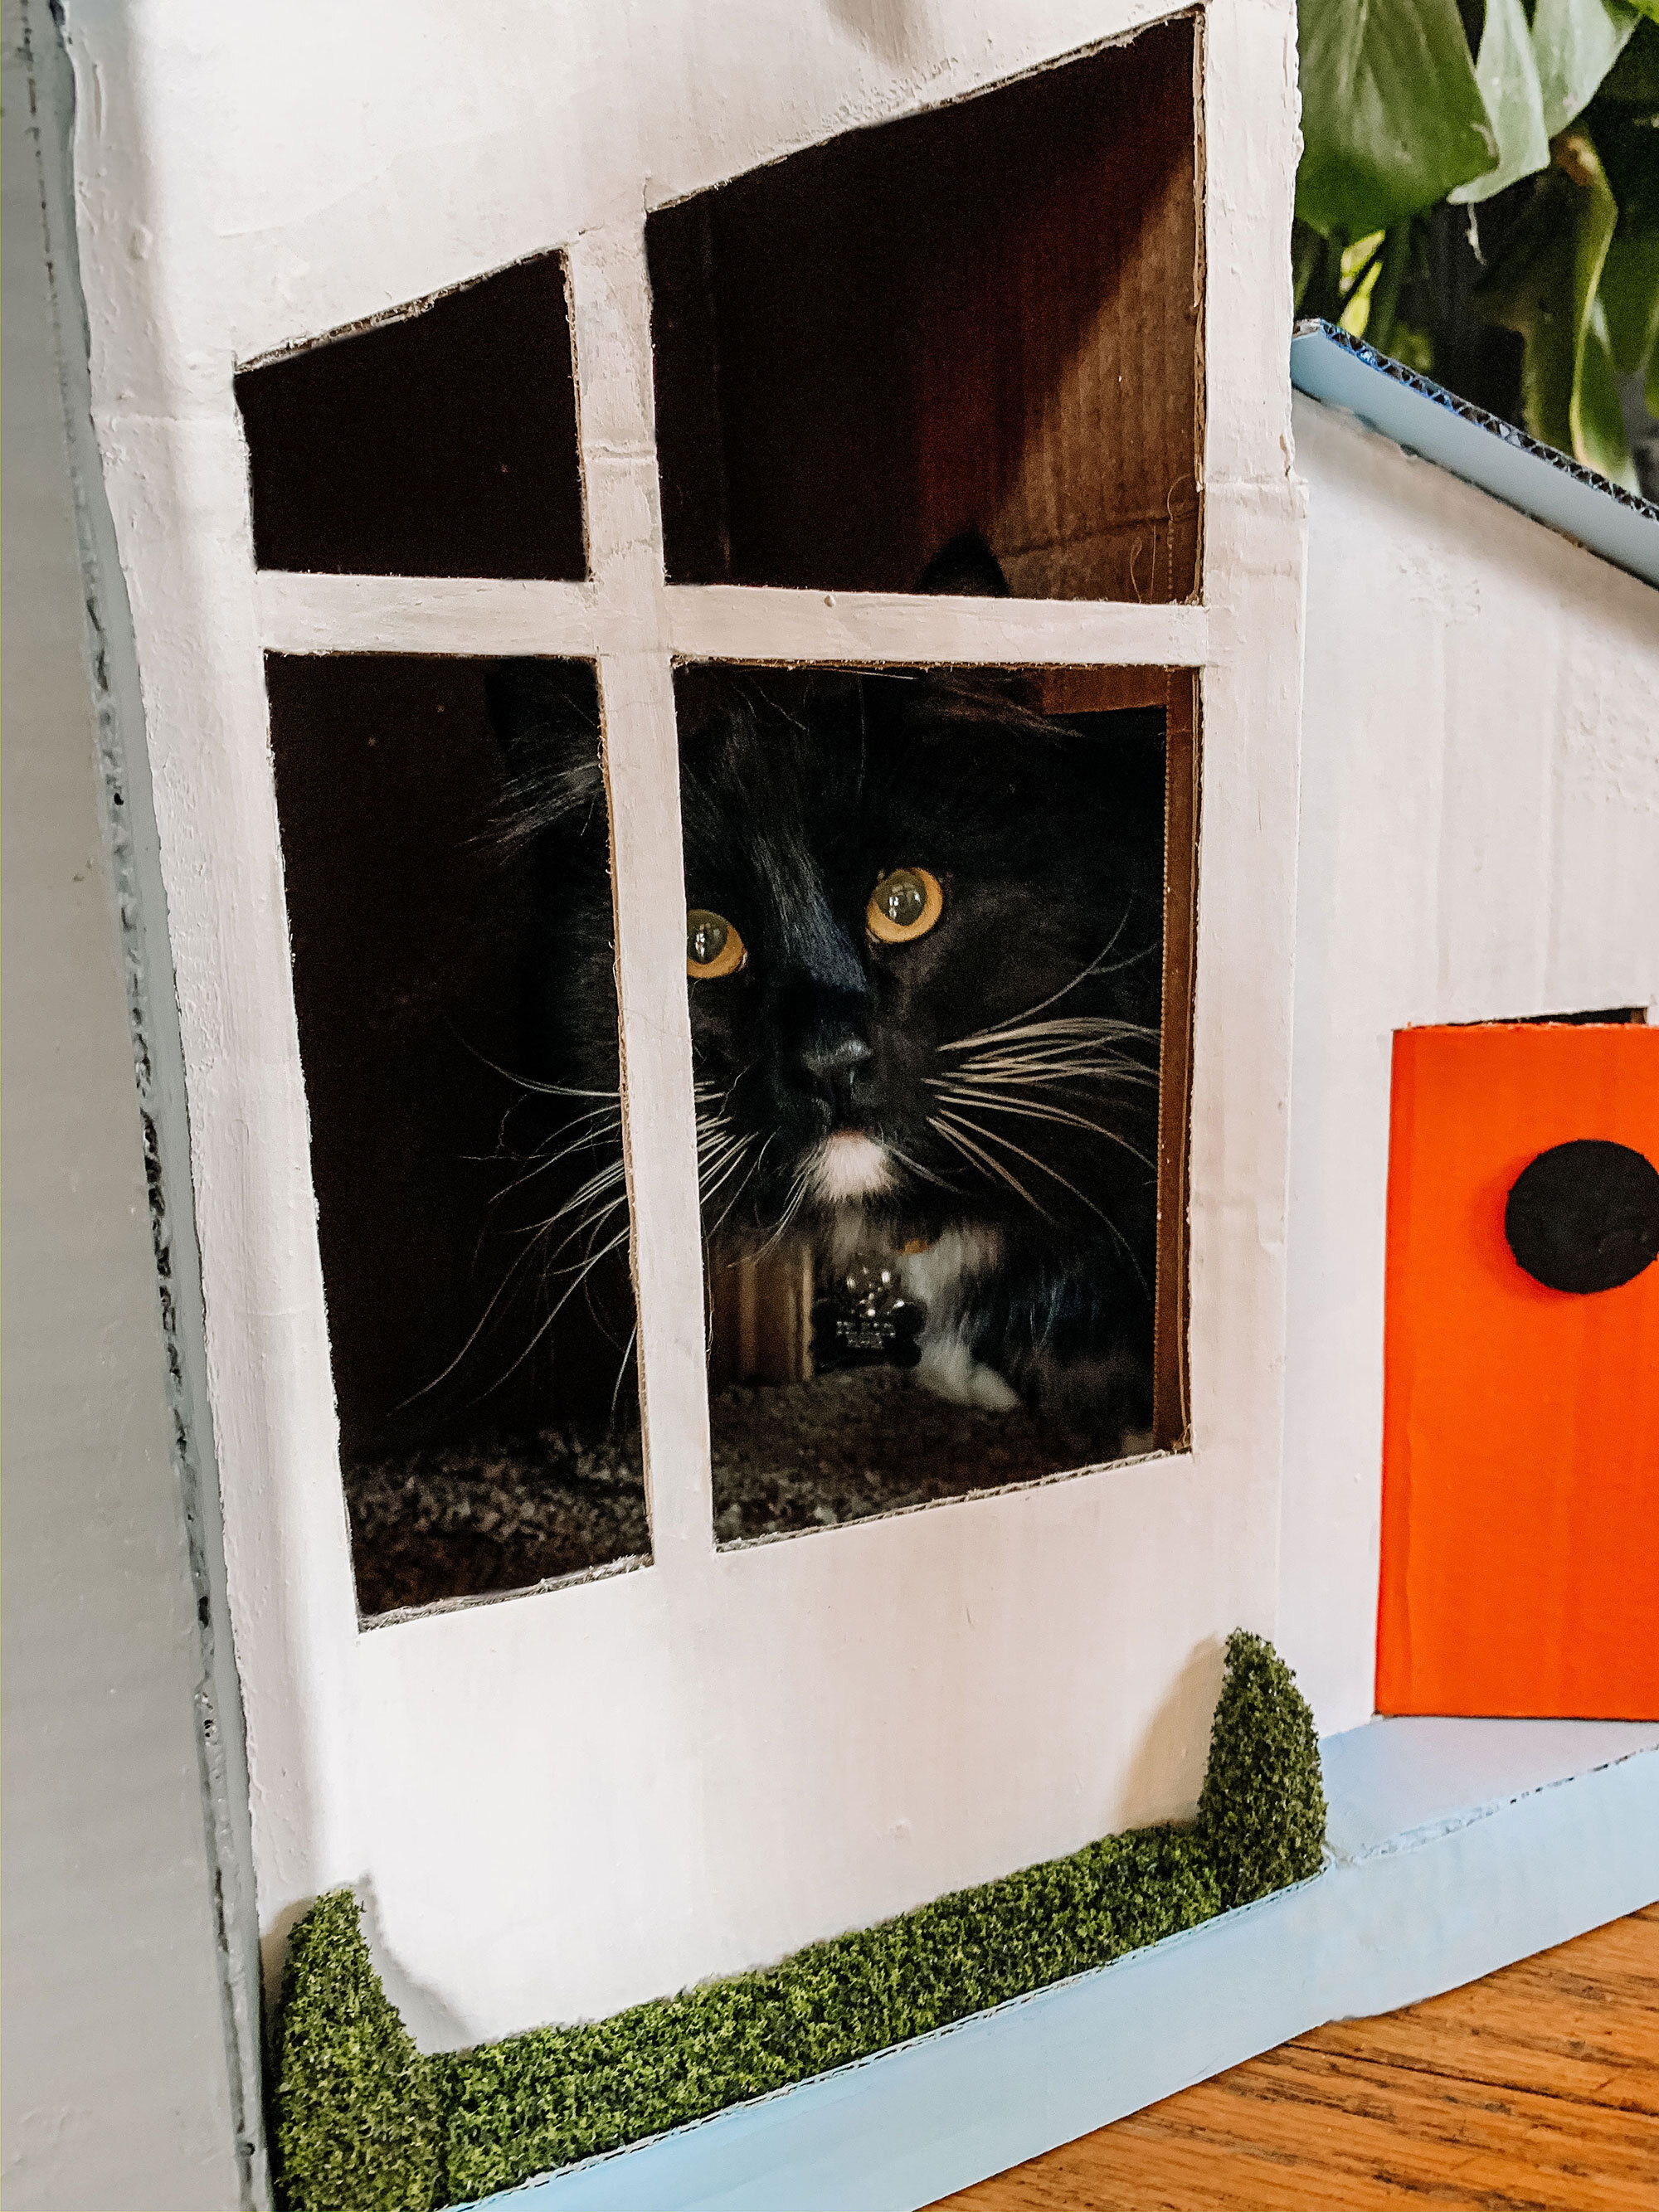 How To Make A Cardboard Cat House The Green Mad House